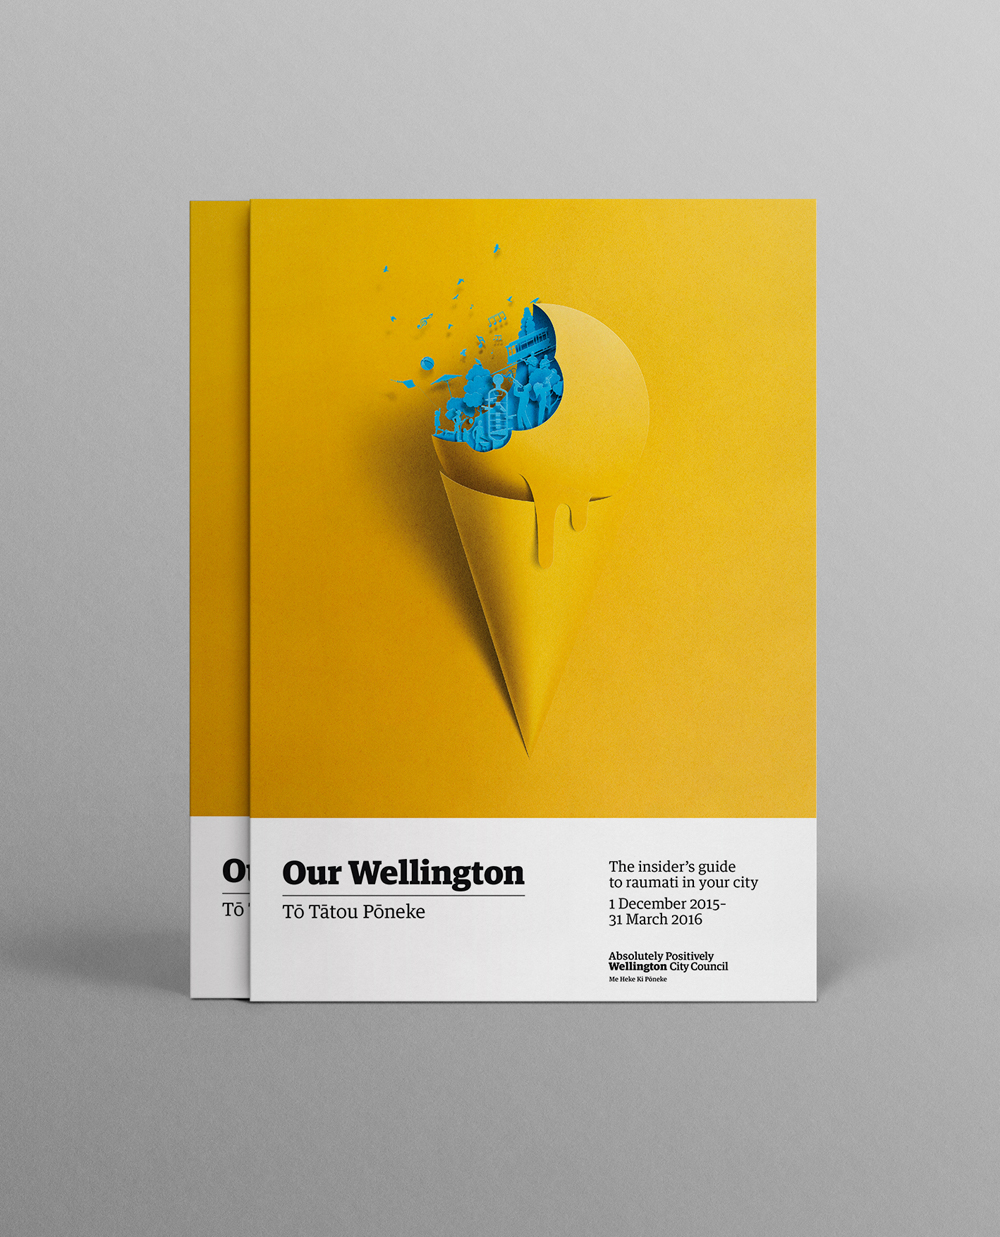 Colorful Poster Series Mimicking Cut Paper for Wellington City Council Summer Series